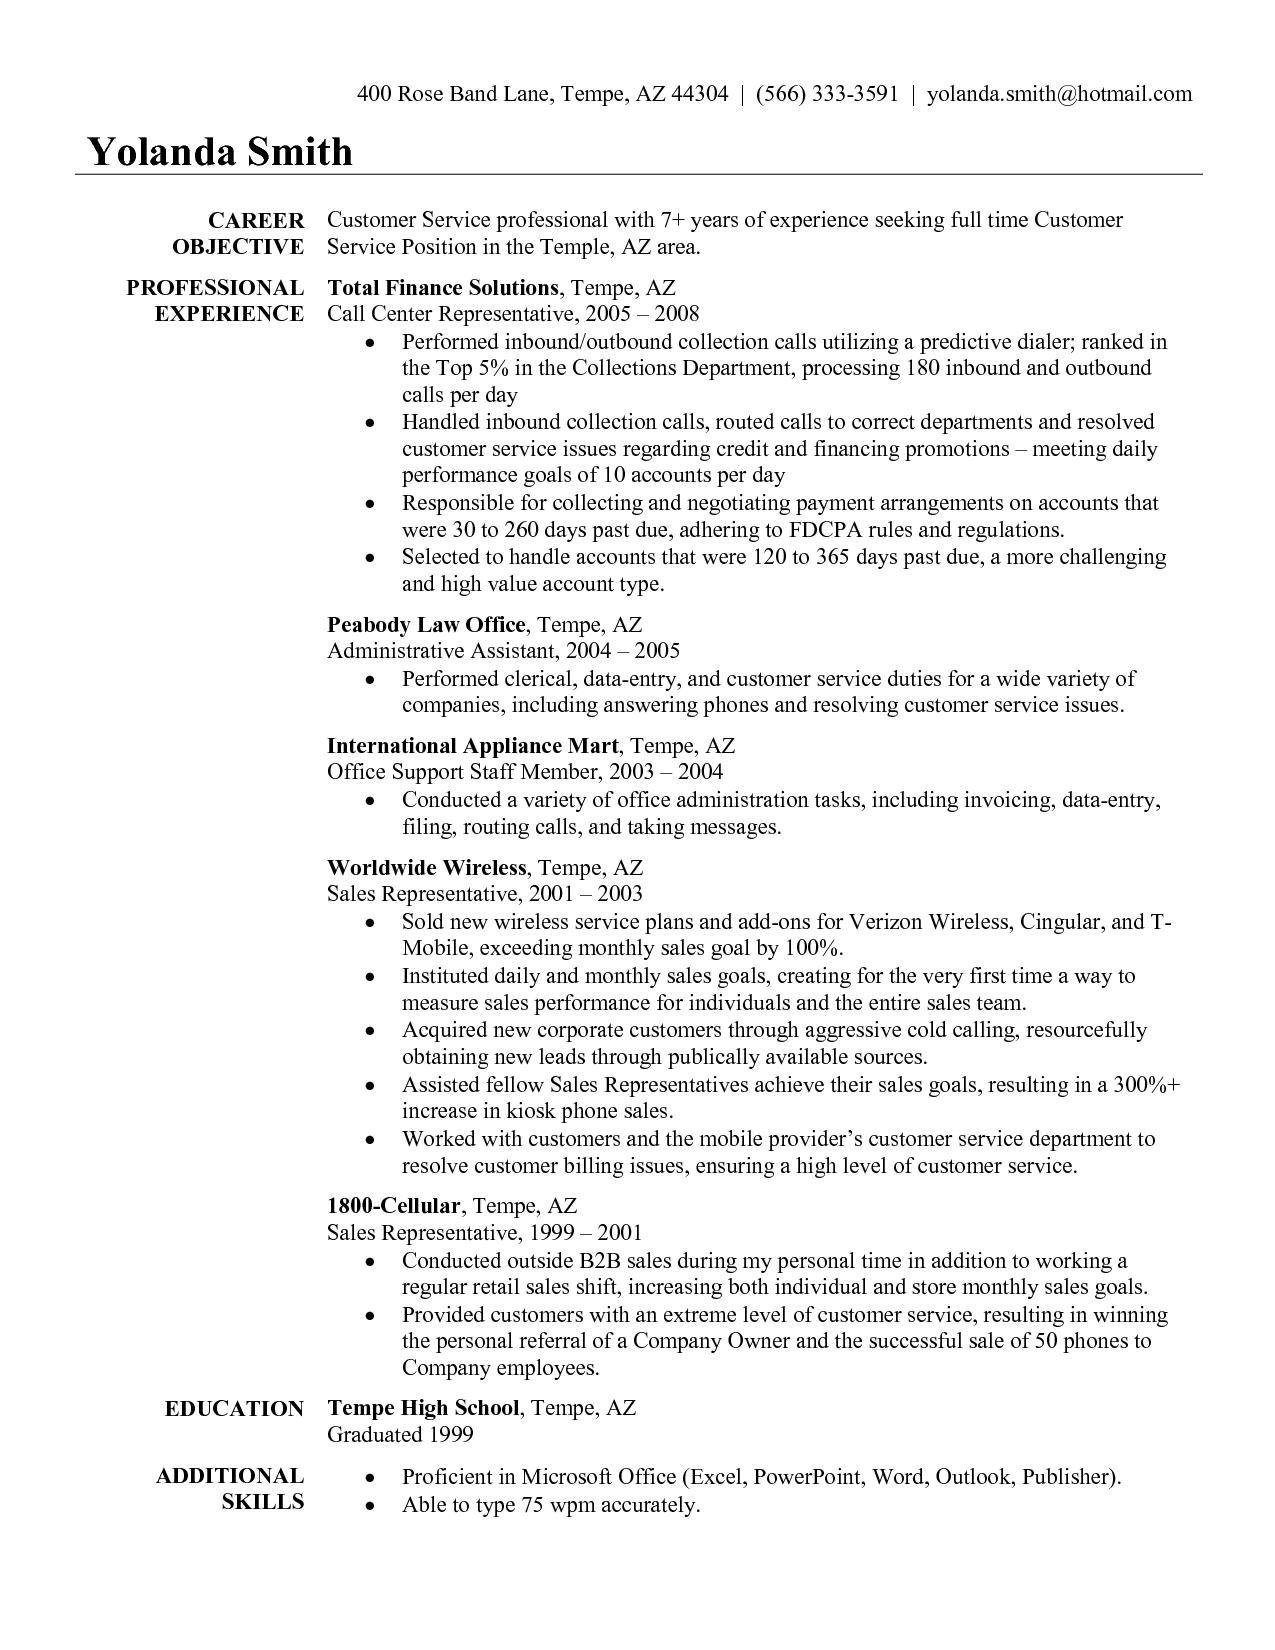 traffic customer resume examplescustomer service resume examplescustomer service resume examples - Resume Objective For Customer Service Representative